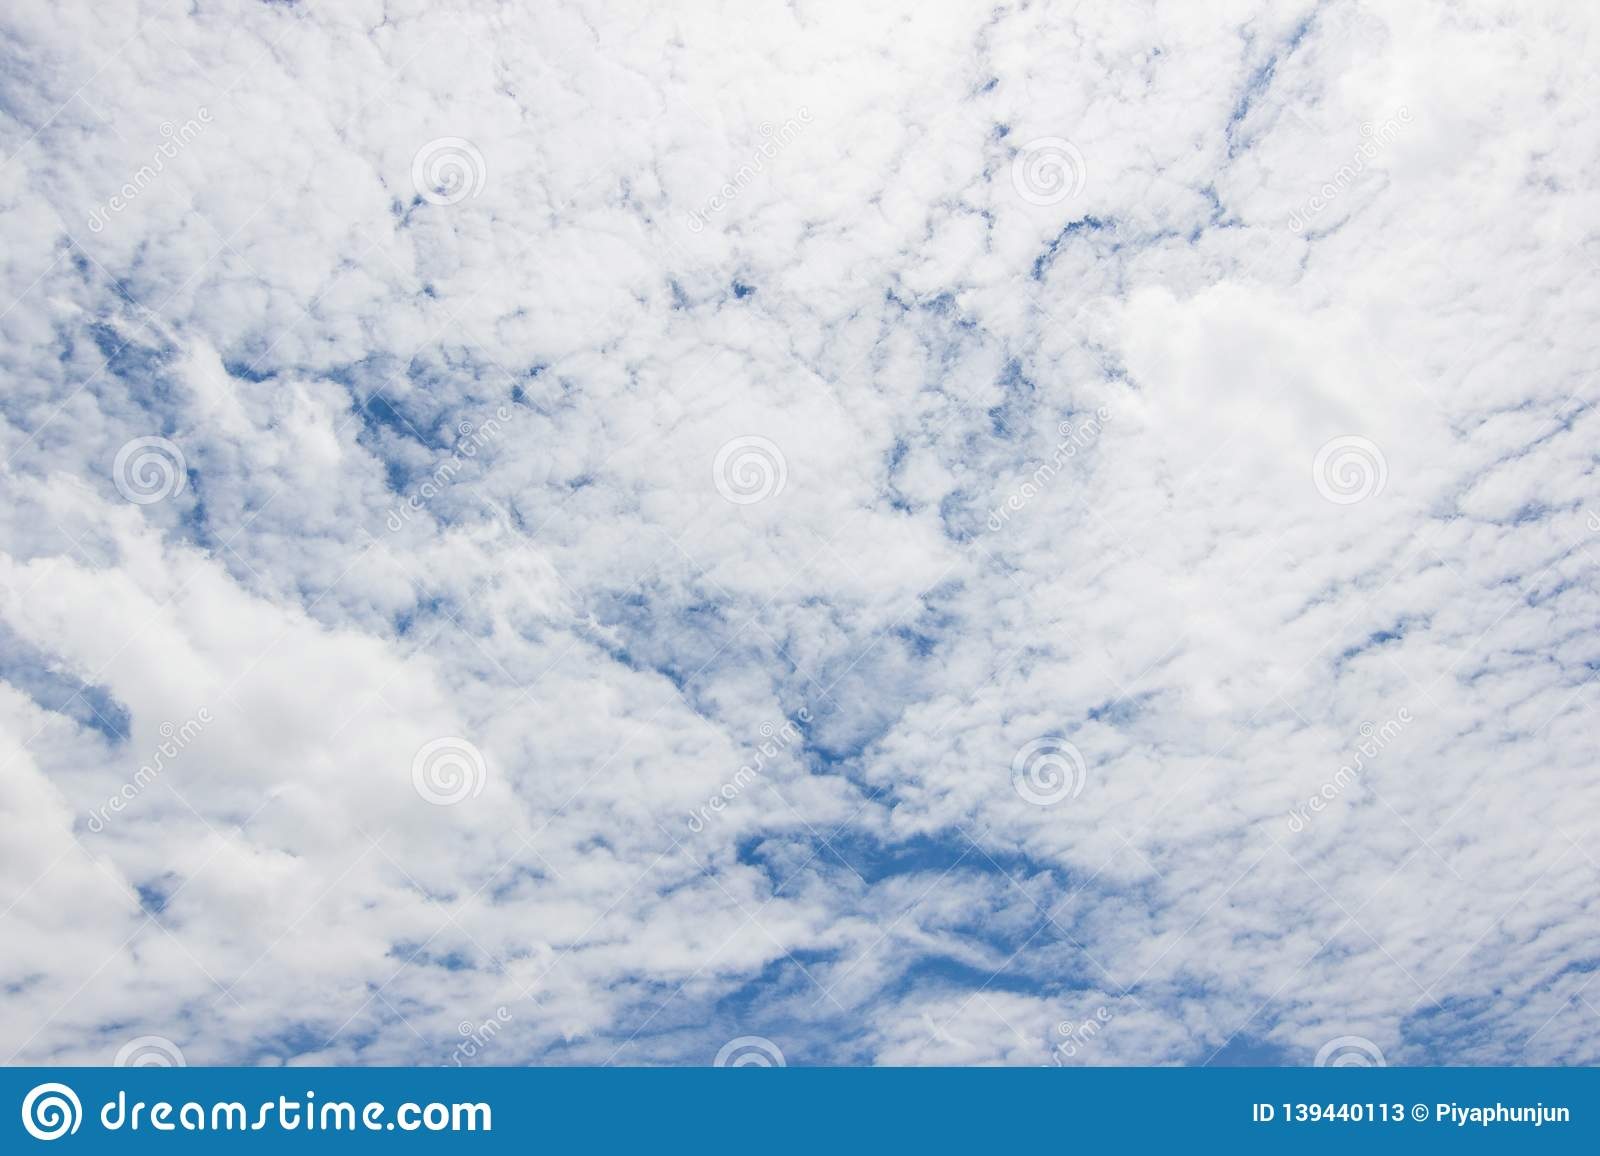 Transparent Sky With Clouds And Atmospheric Afternoon Stock Image